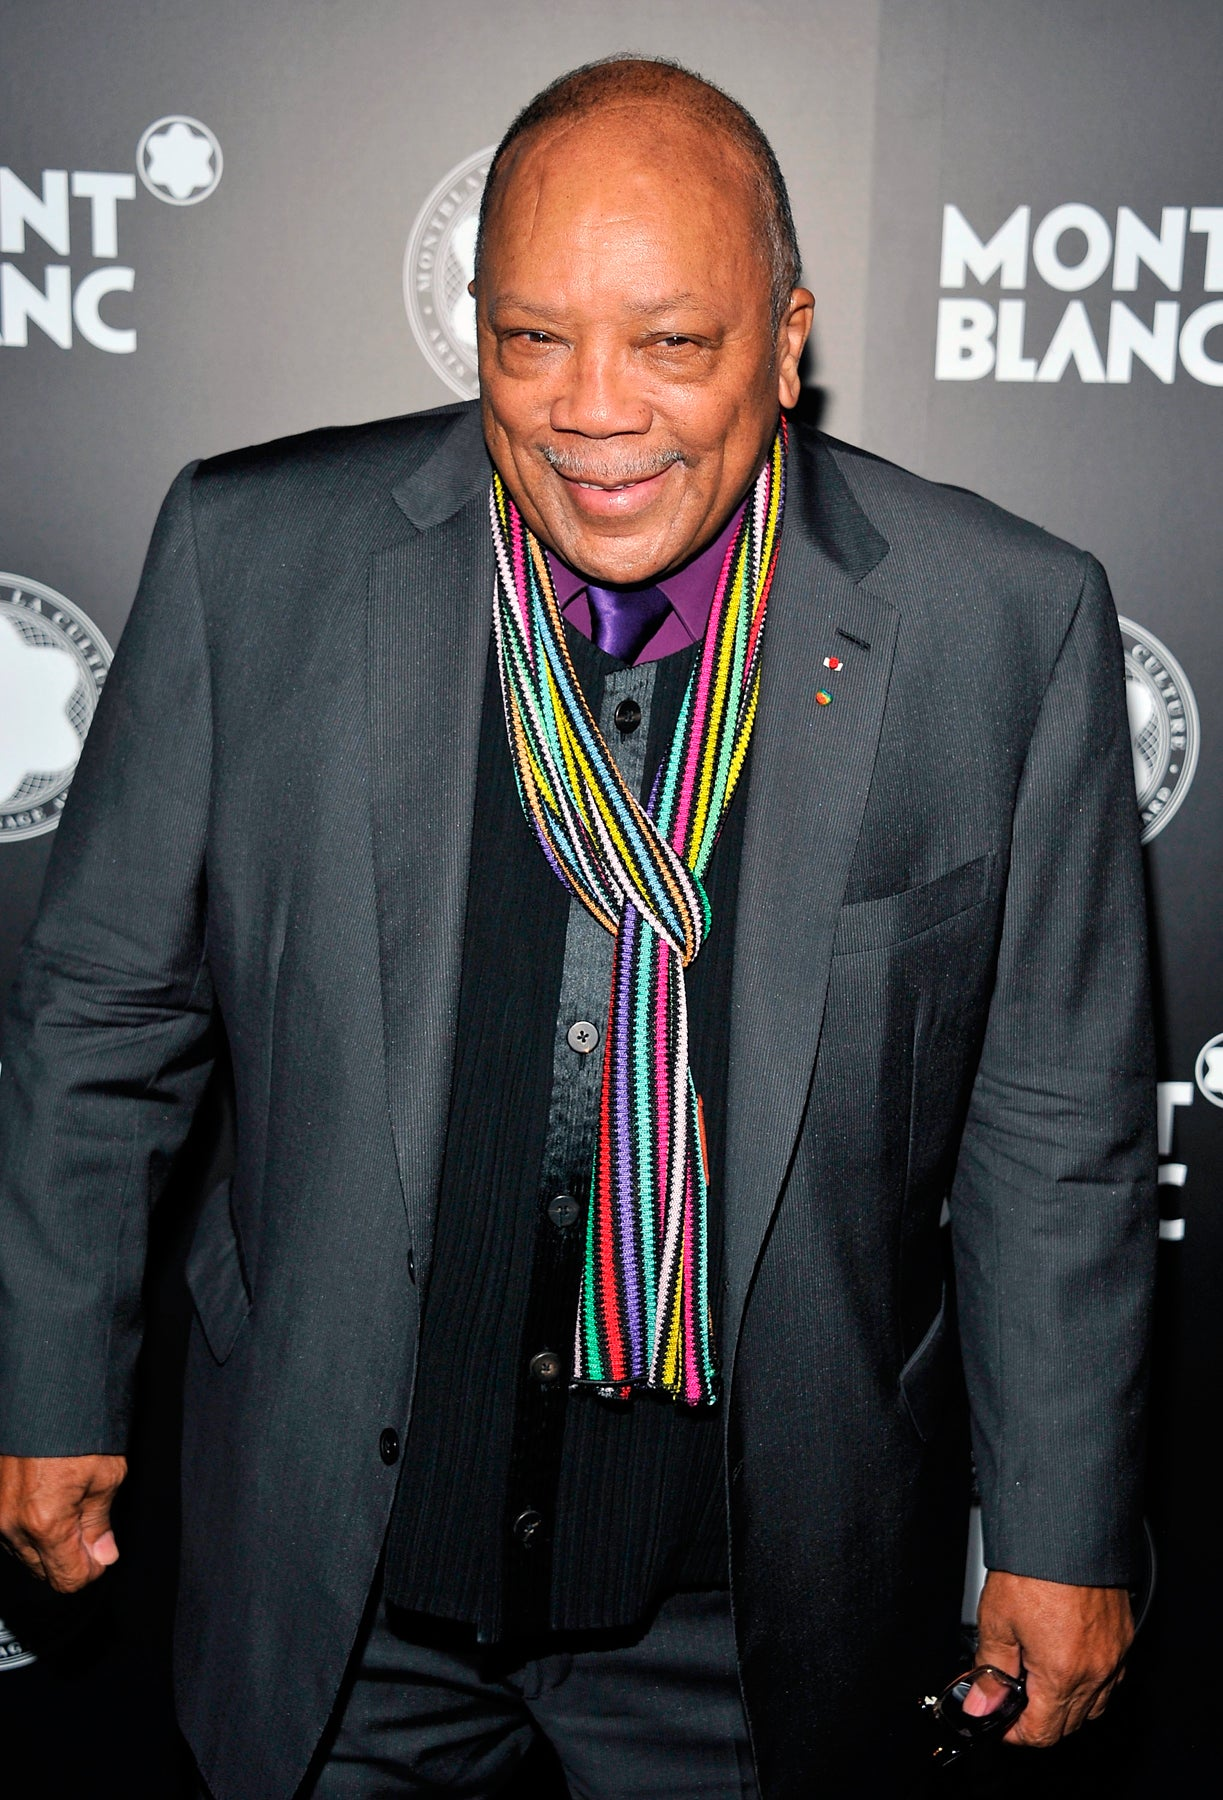 Quincy Jones Says He Won't Present At the Oscars If He Can't Address Lack of Diversity